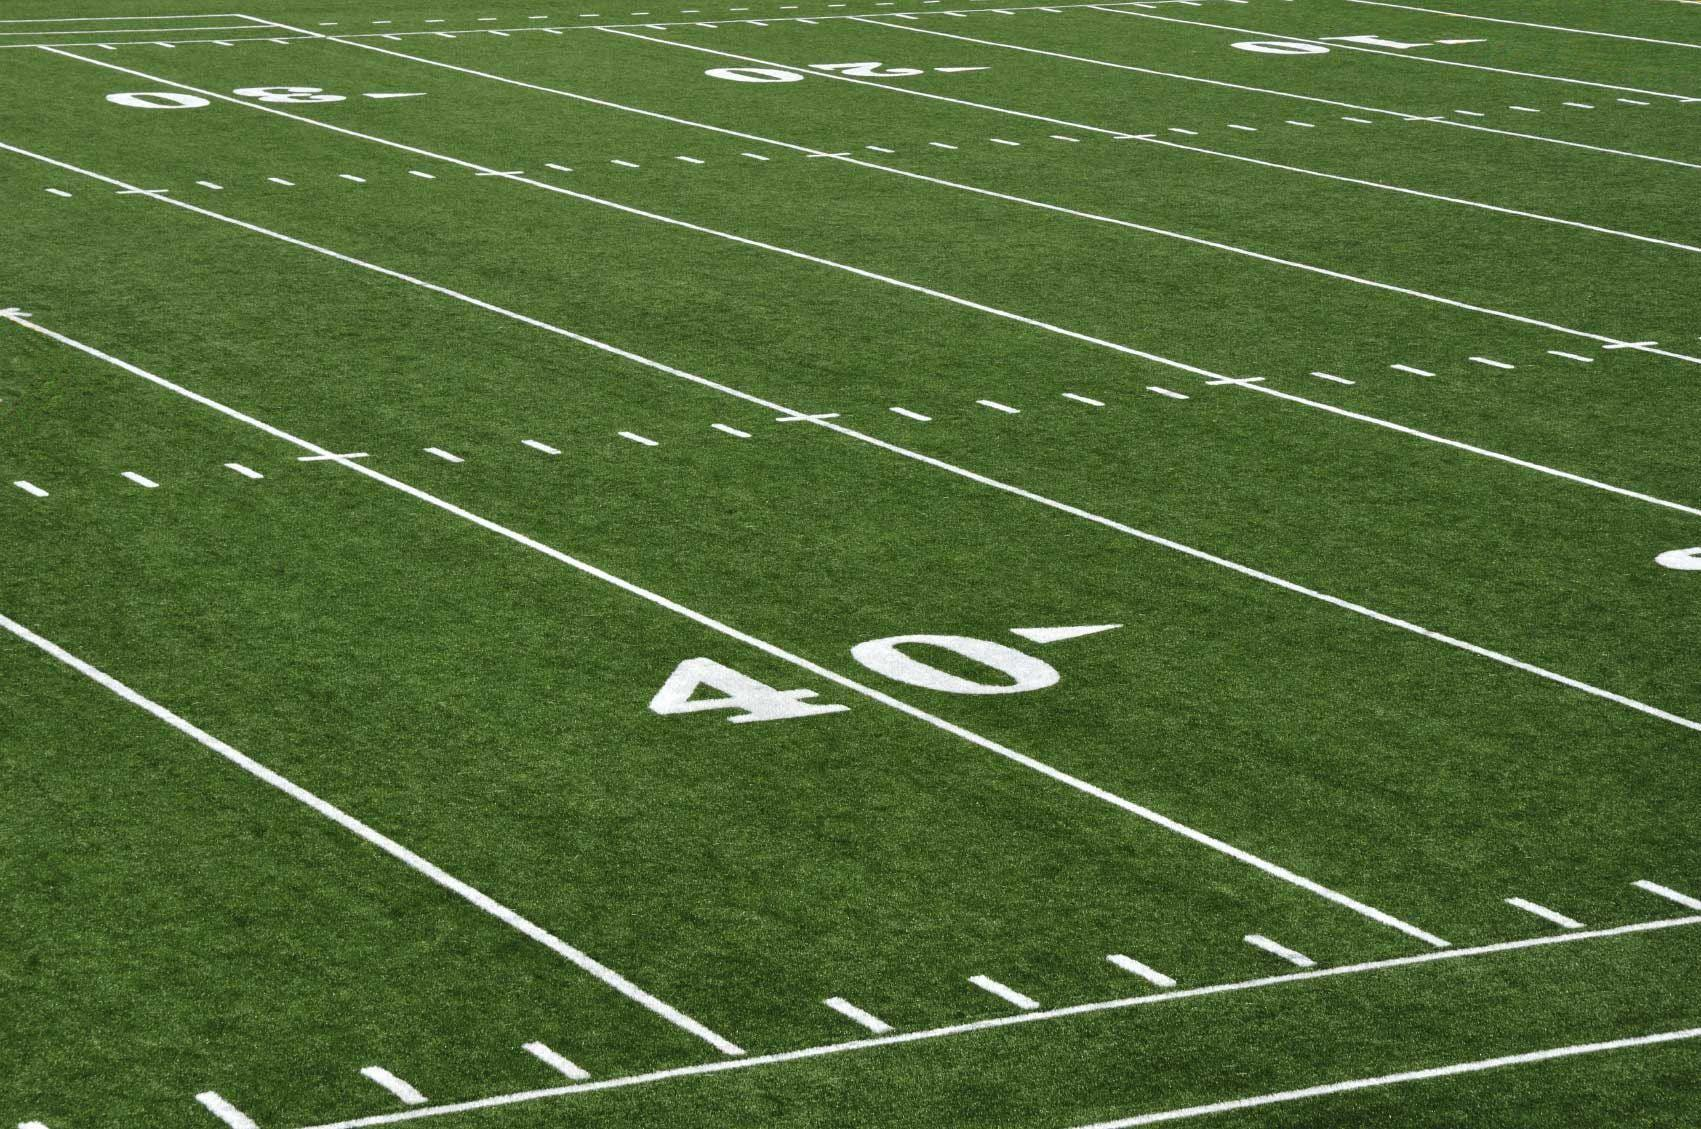 American Football Backgrounds Free: Football Field Wallpapers